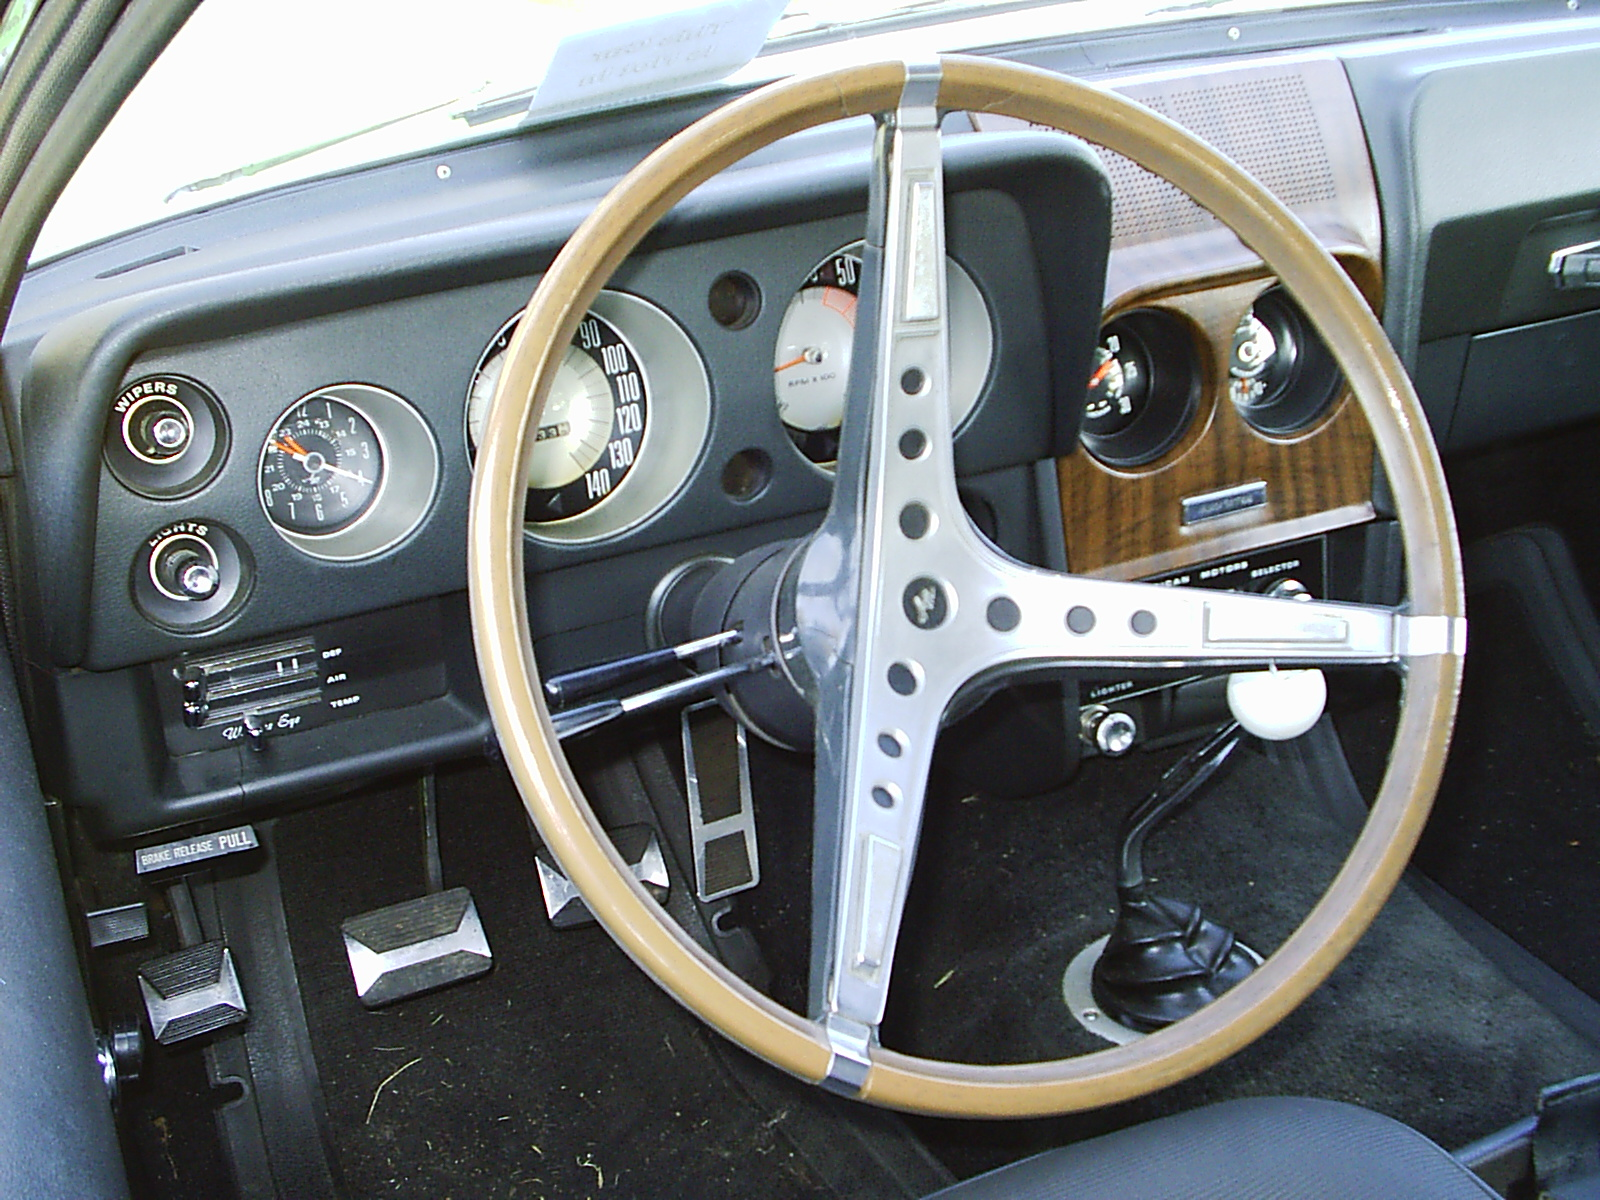 similiar 1968 pontiac gto temperature gauge keywords pontiac gto wiring diagrams besides home security camera cable wiring